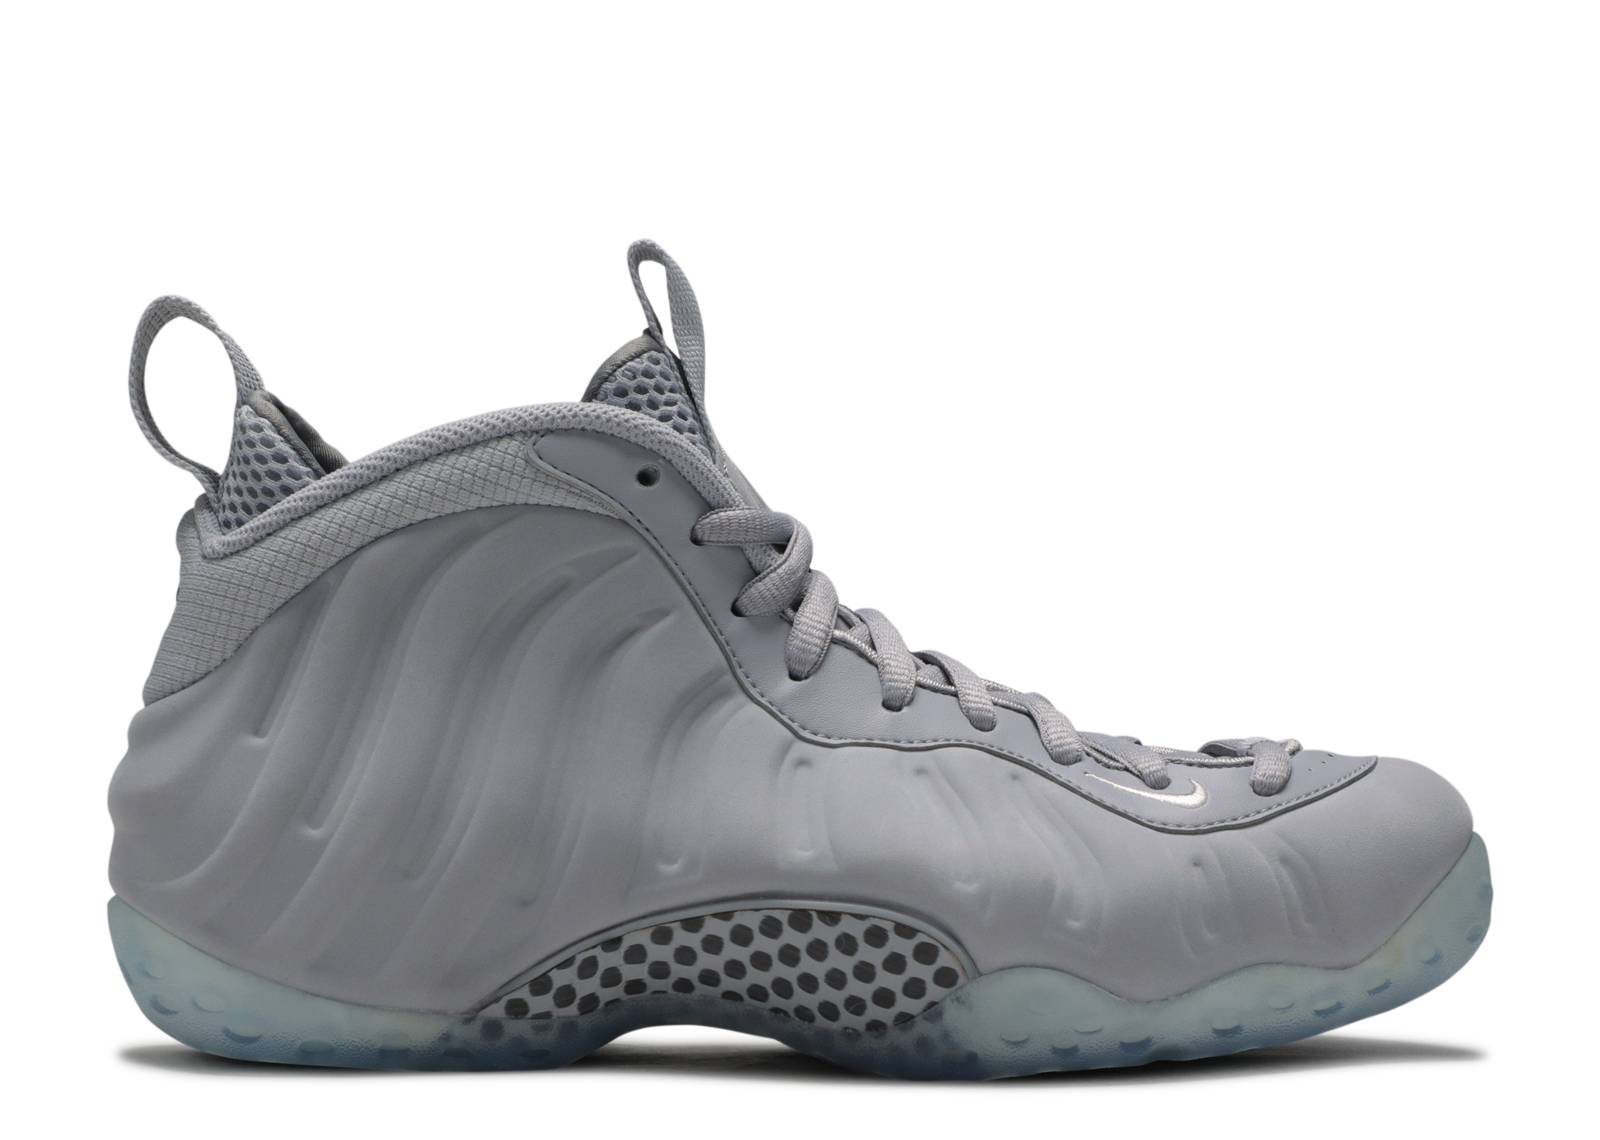 557dcc2aa51e Air Foamposite One Prm - Nike - 575420 007 - wolf grey white-cool ...